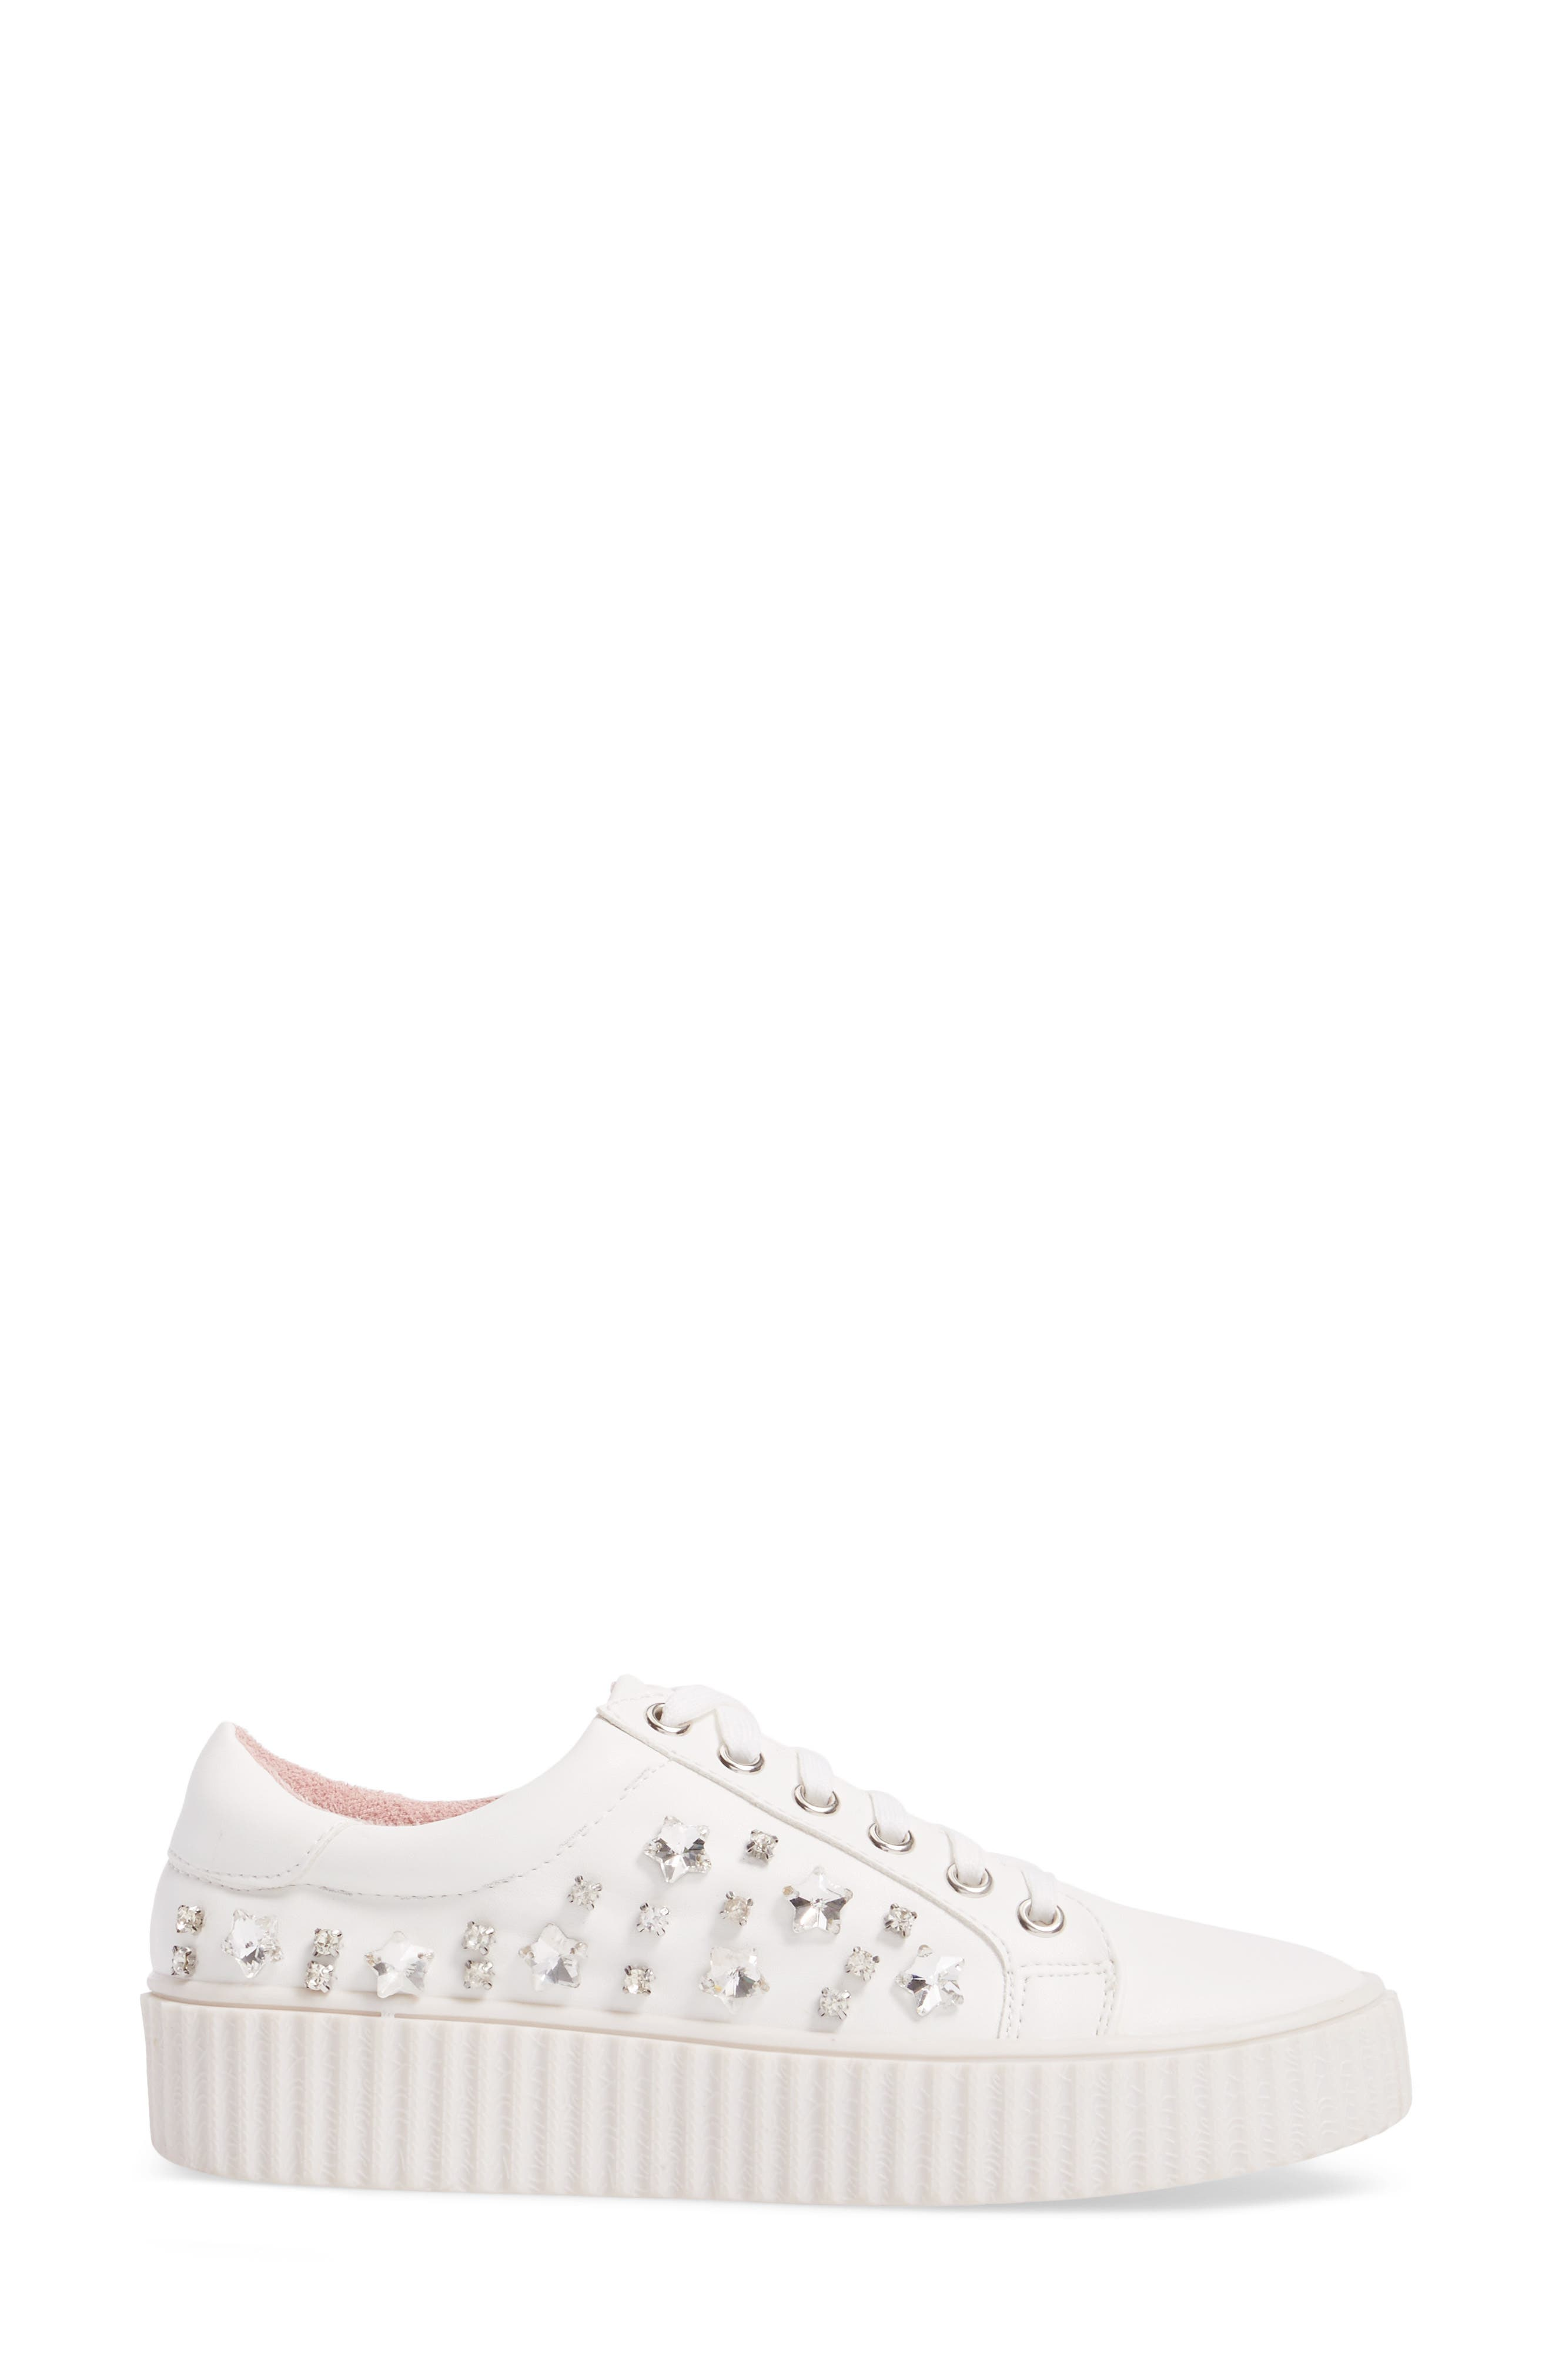 Pam Embellished Platform Sneaker,                             Alternate thumbnail 3, color,                             WHITE